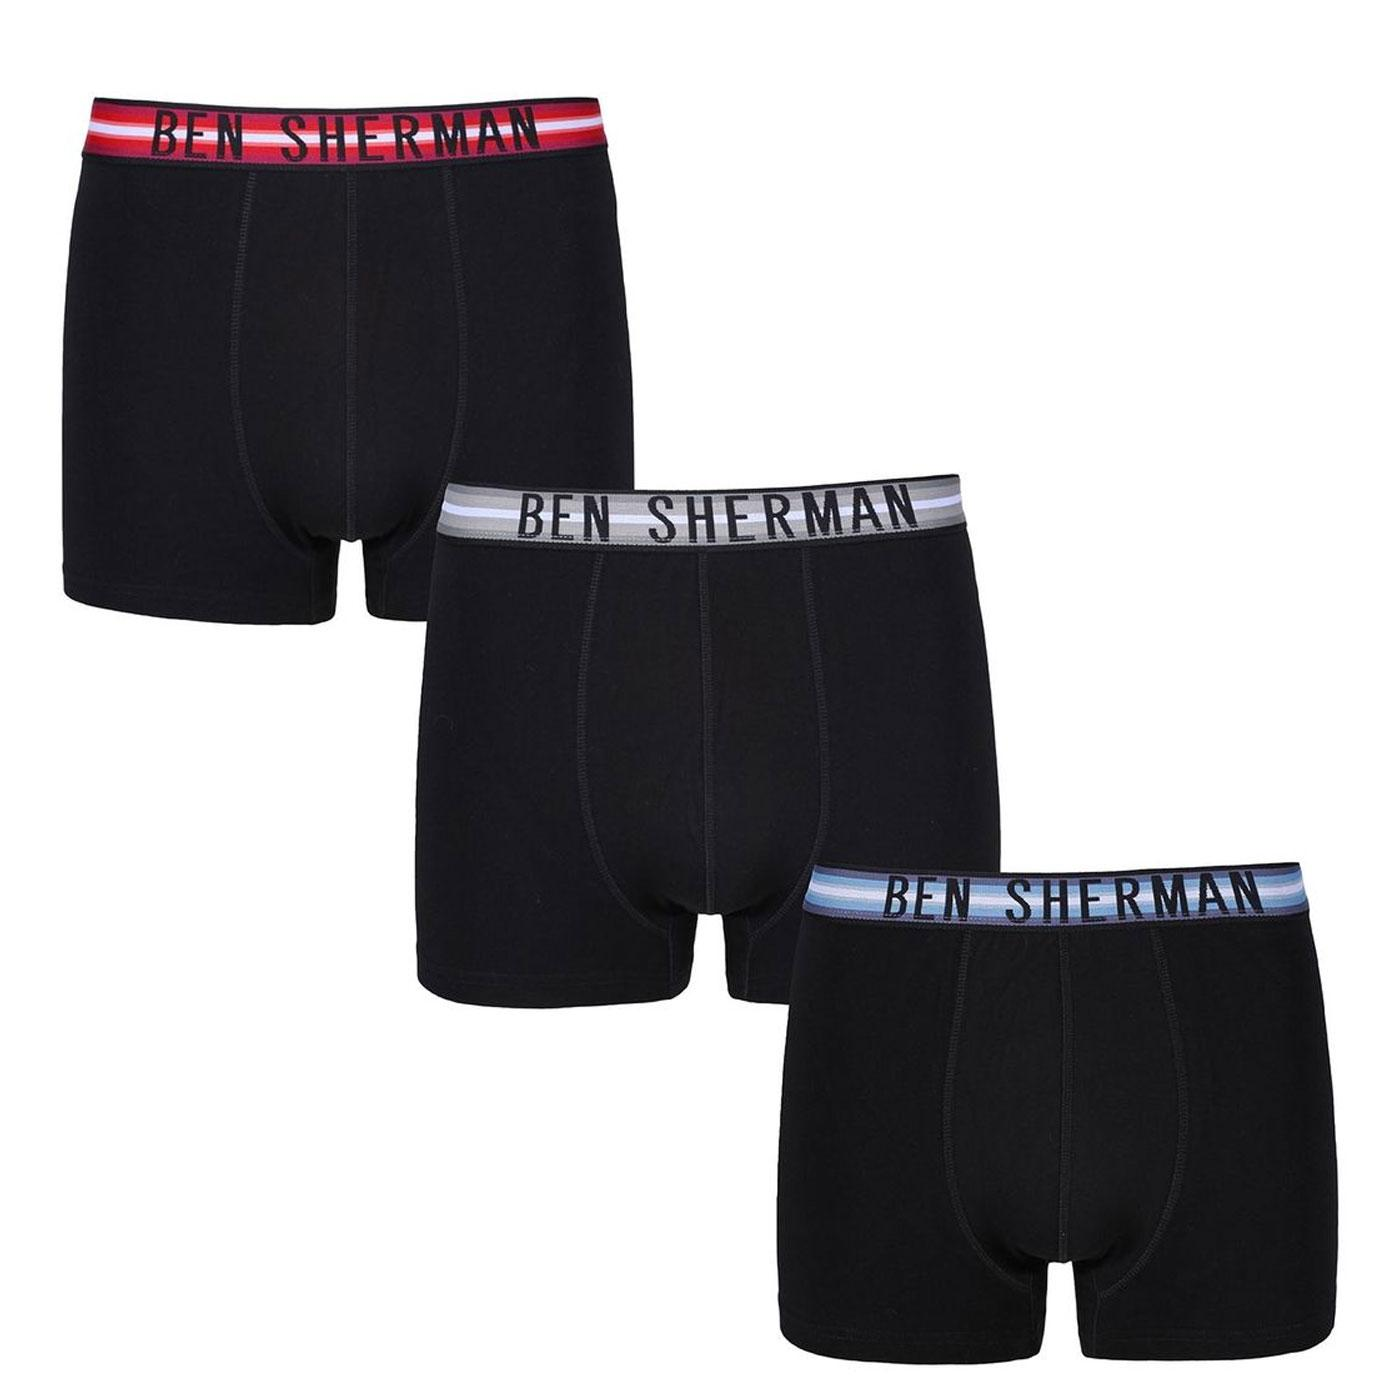 + Wynton BEN SHERMAN 3 Pack Men's Trunks B/R/G